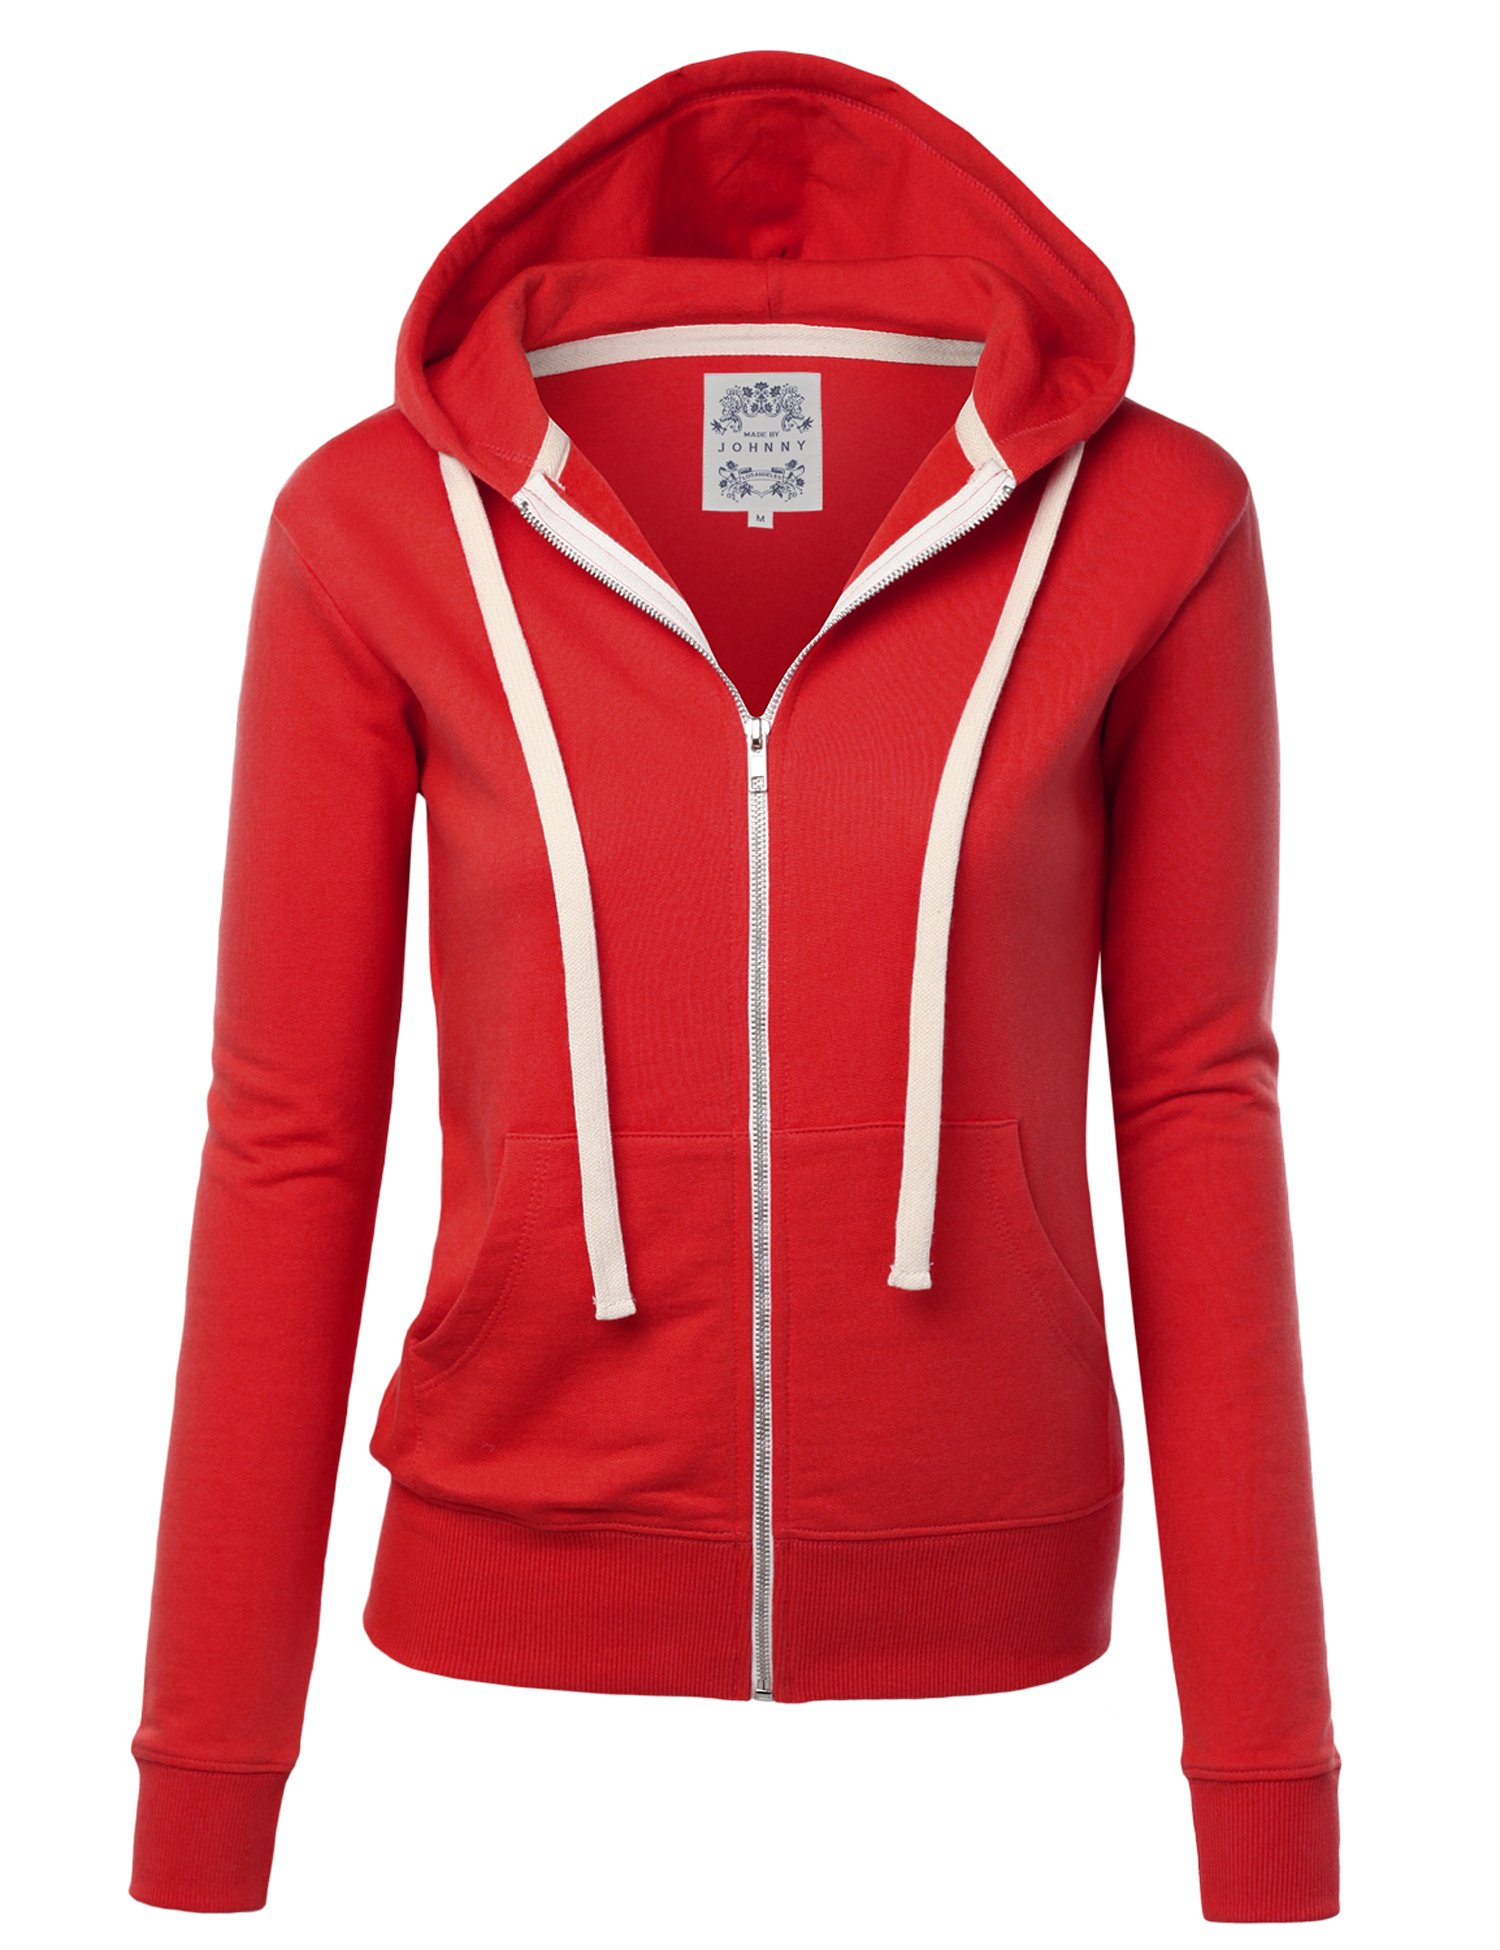 Made By Johnny WSK954 Womens Active Fleece Zip up Hoodie Sweater Jacket S RED